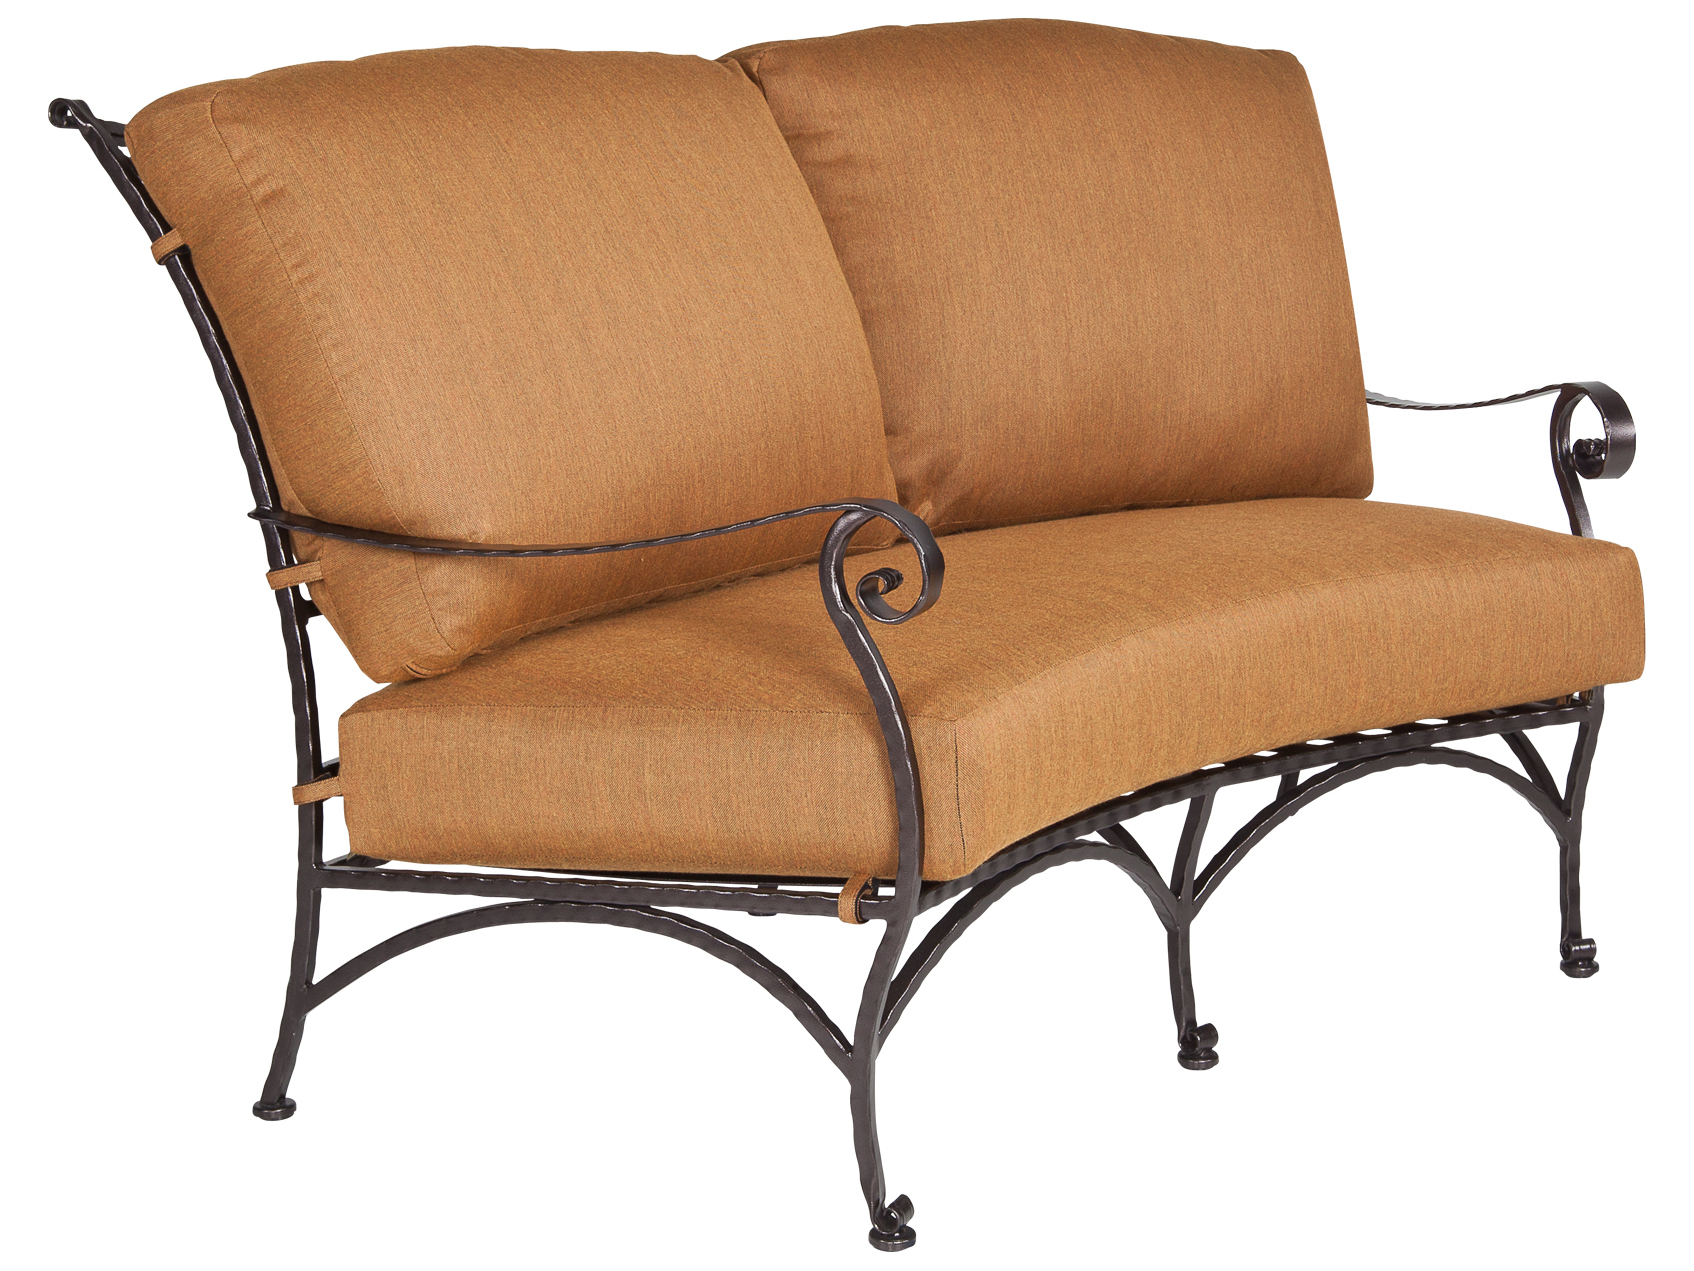 Ow Lee San Cristobal Wrought Iron Crescent Love Seat 692 2s